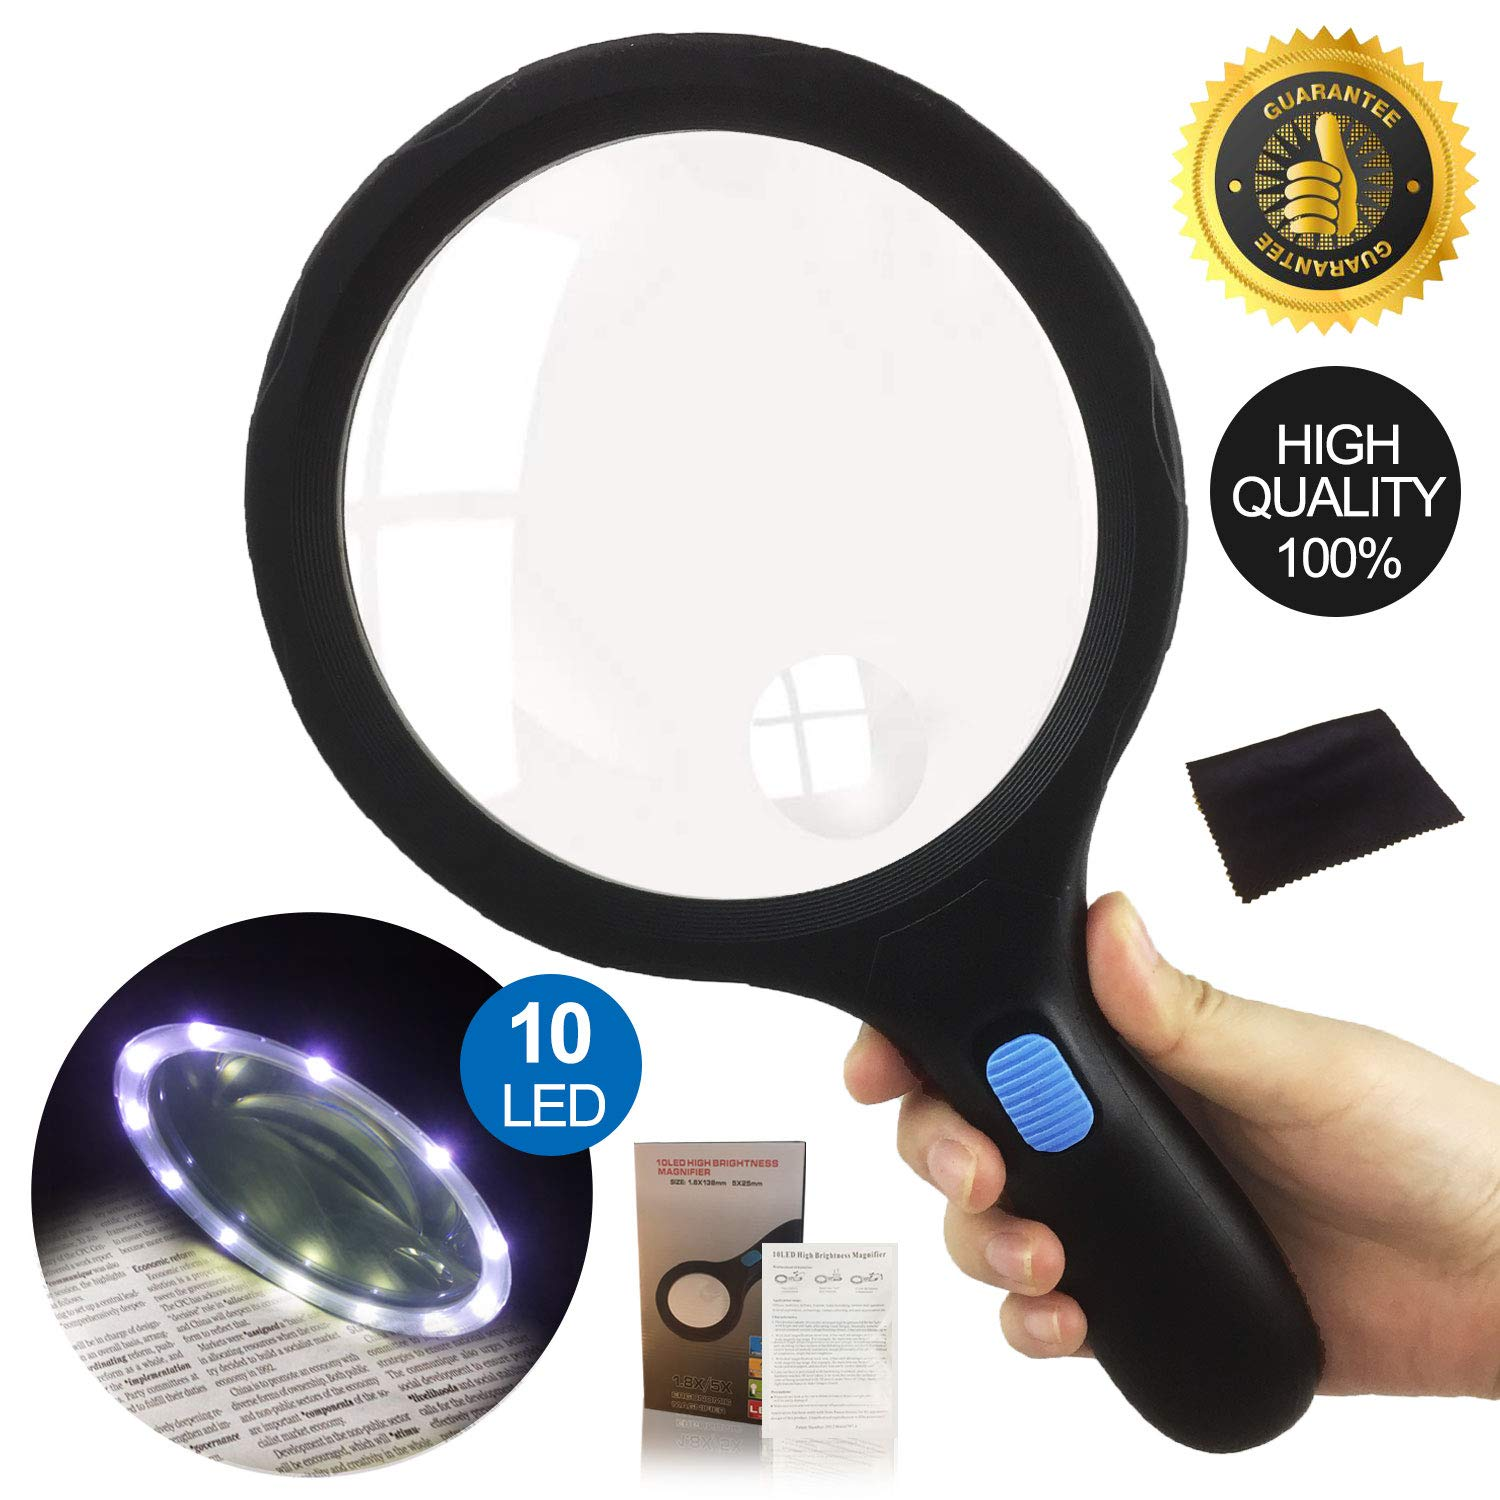 Magnifying Handheld Viewing Lightweight Magnifier